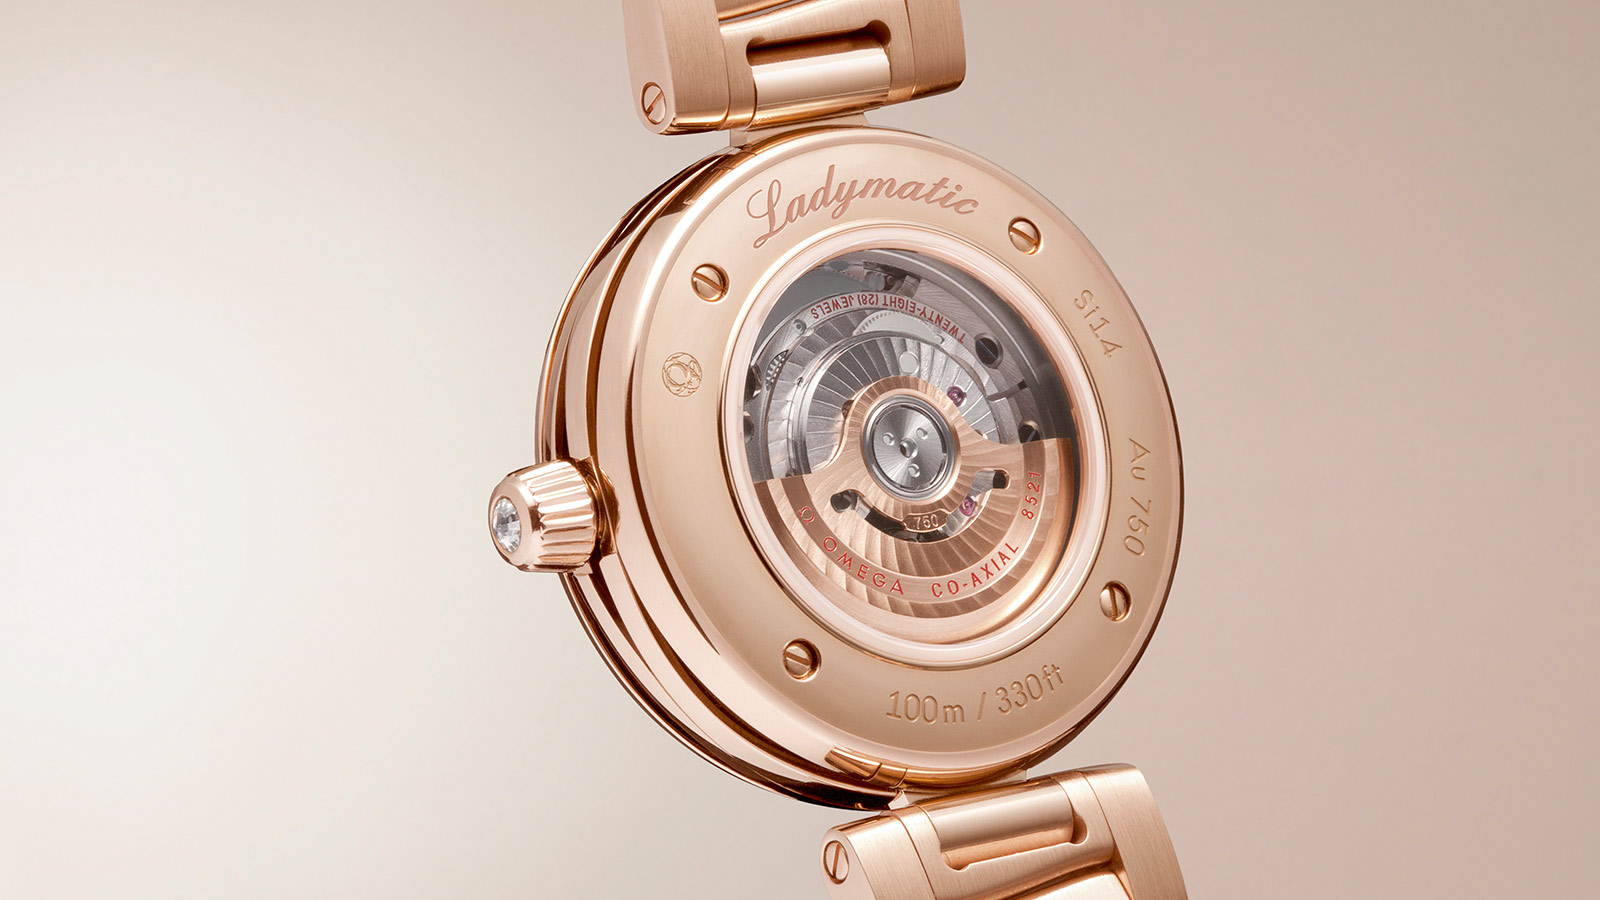 De Ville Ladymatic Ladymatic Omega Co‑Axial 34 mm - 425.65.34.20.51.001 - View 3